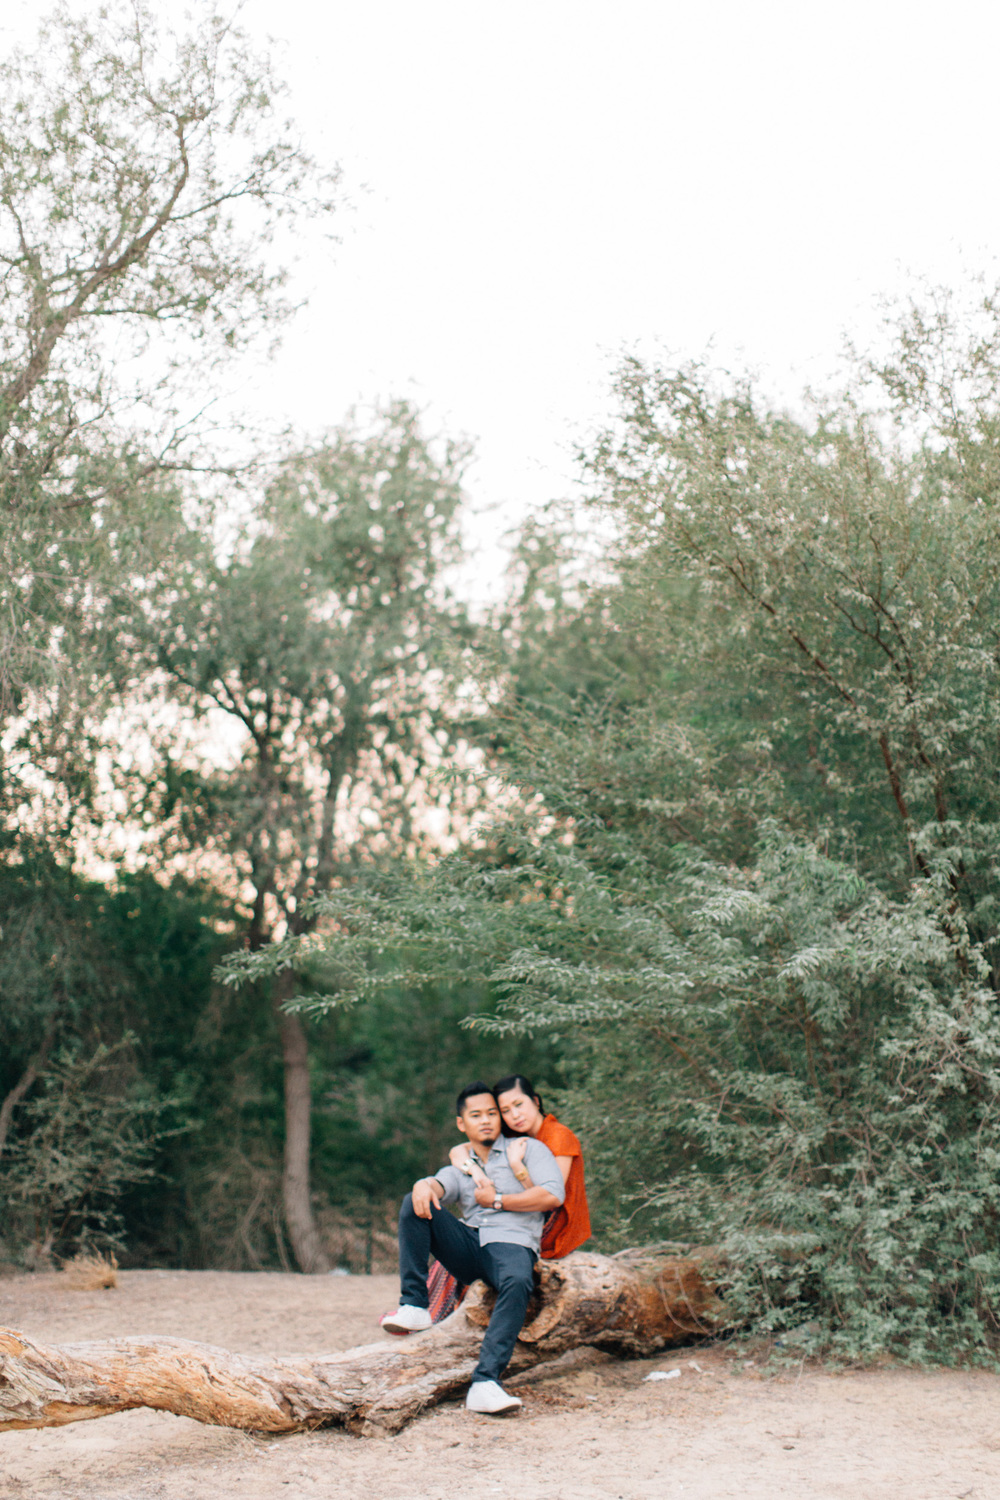 RJ and Roan | Engagement | Joem Aldea | Dubai Wedding photographer_03